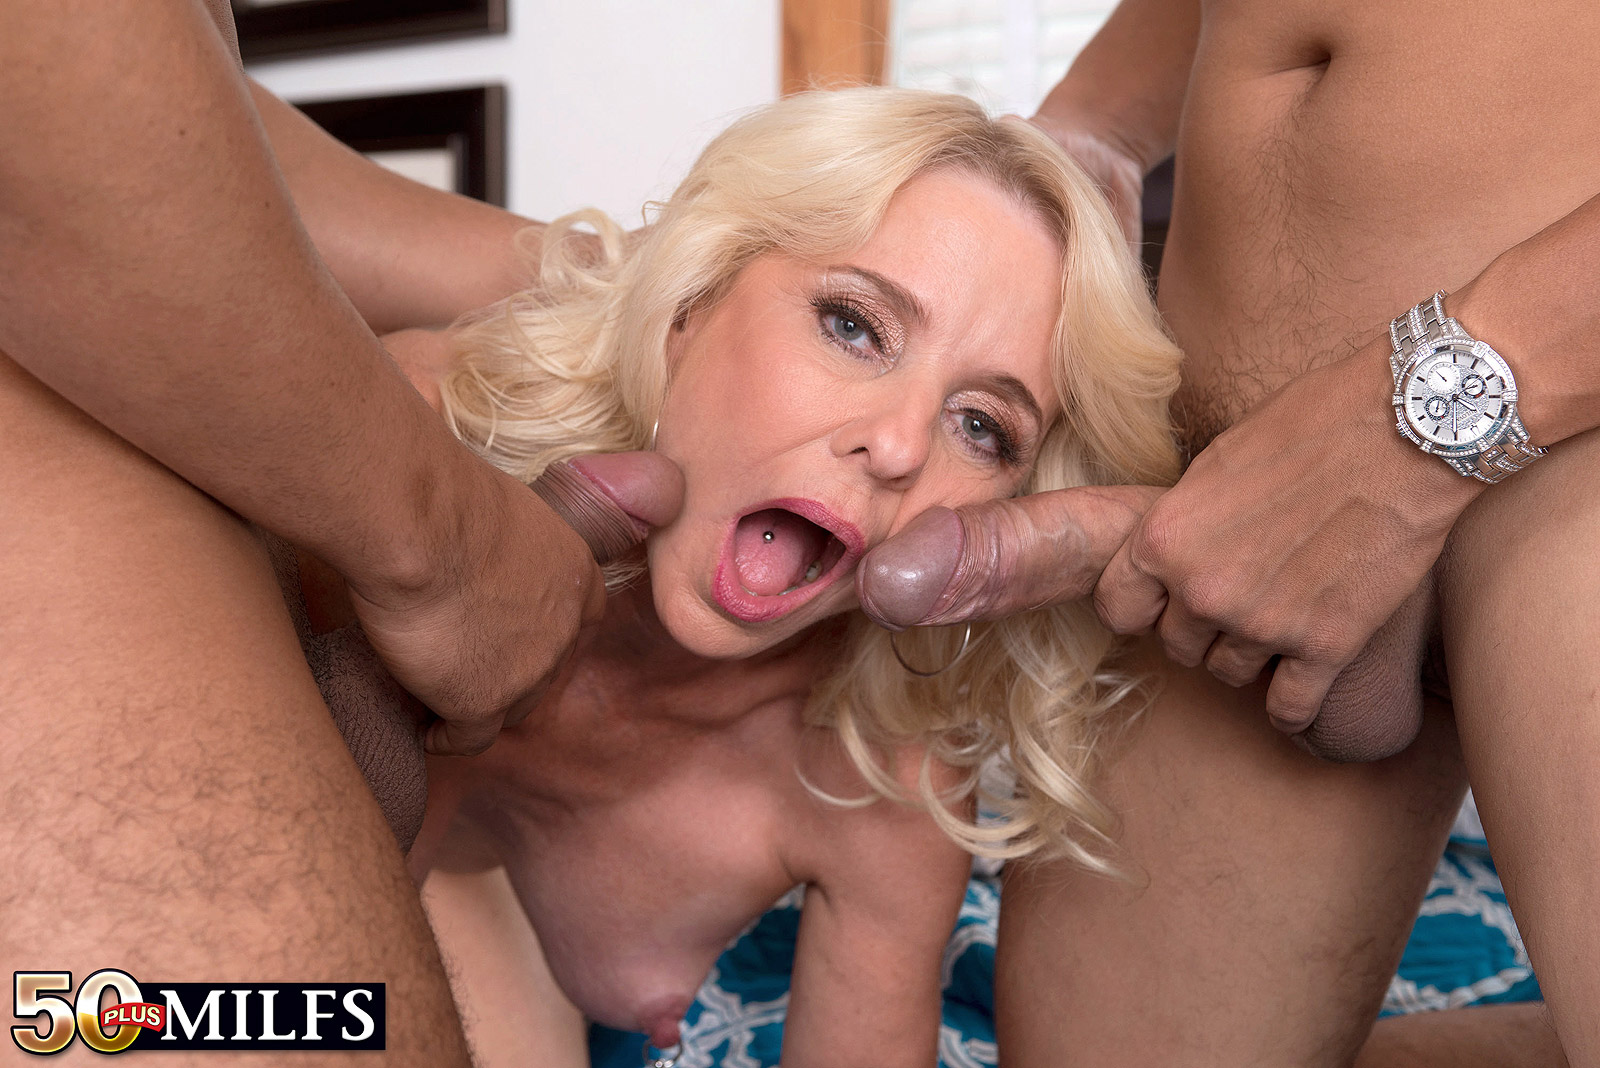 Milf guys fuck older women